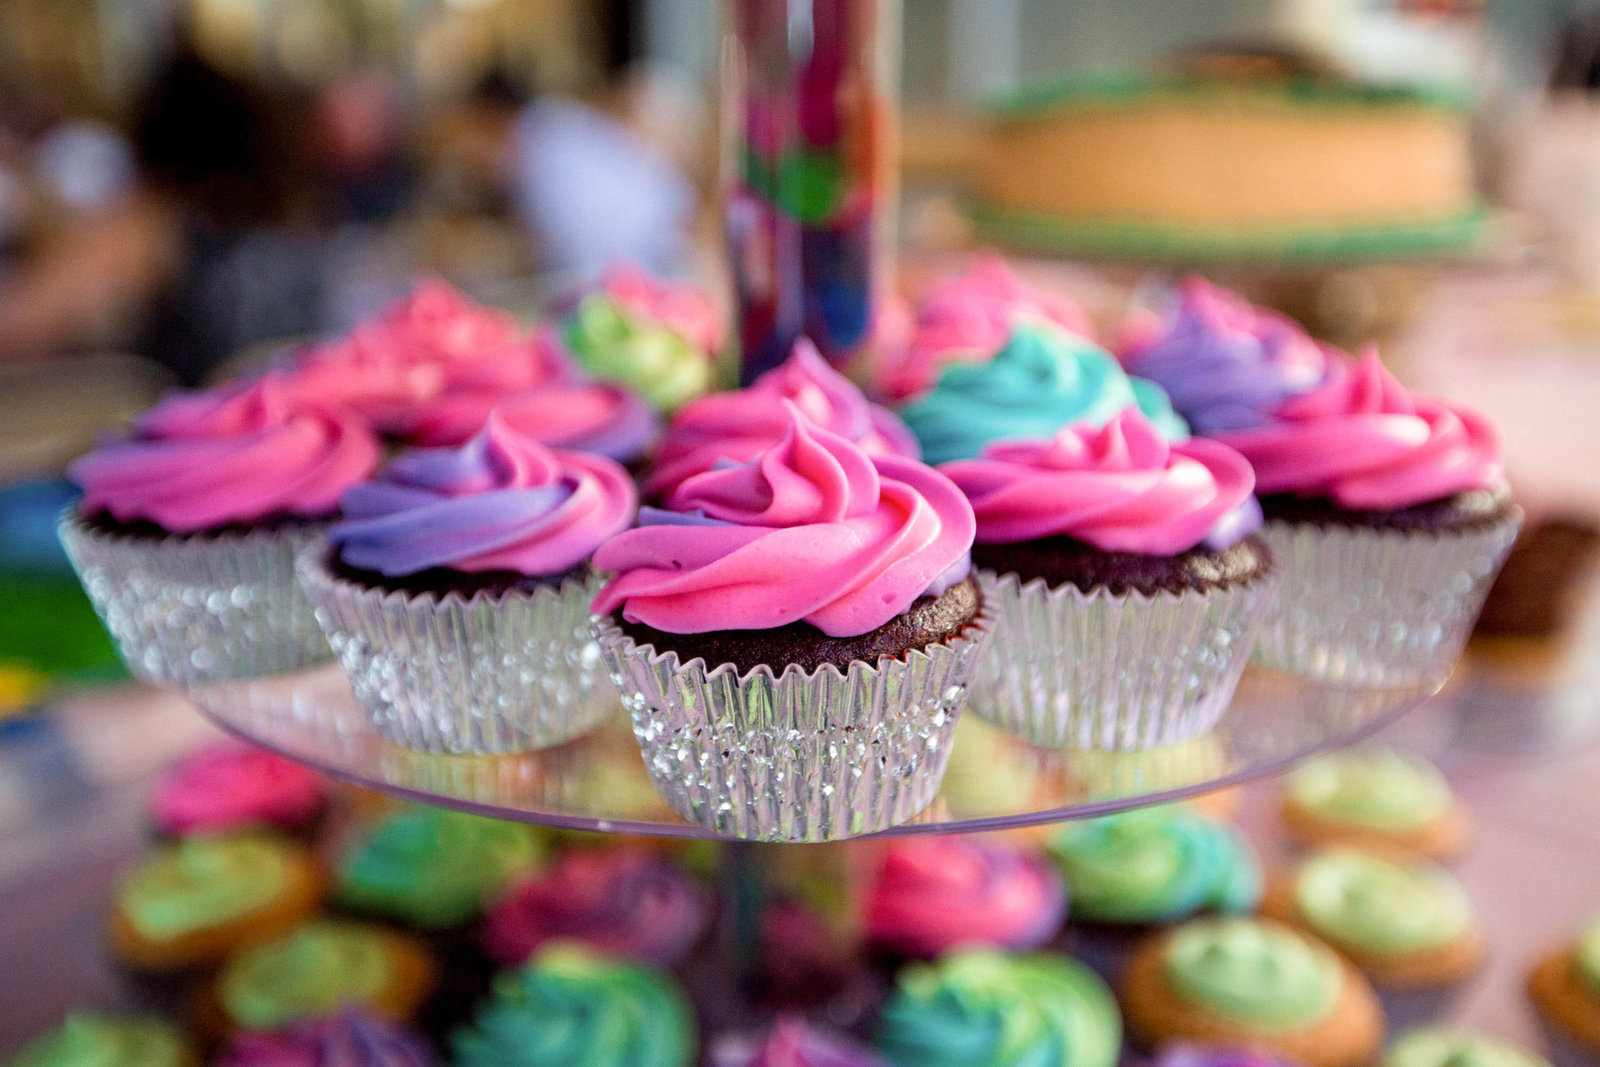 rainbow-cupcake-reception-yards-brewing-philadelphia-pa-wedding-kate-timbers-photography-5592